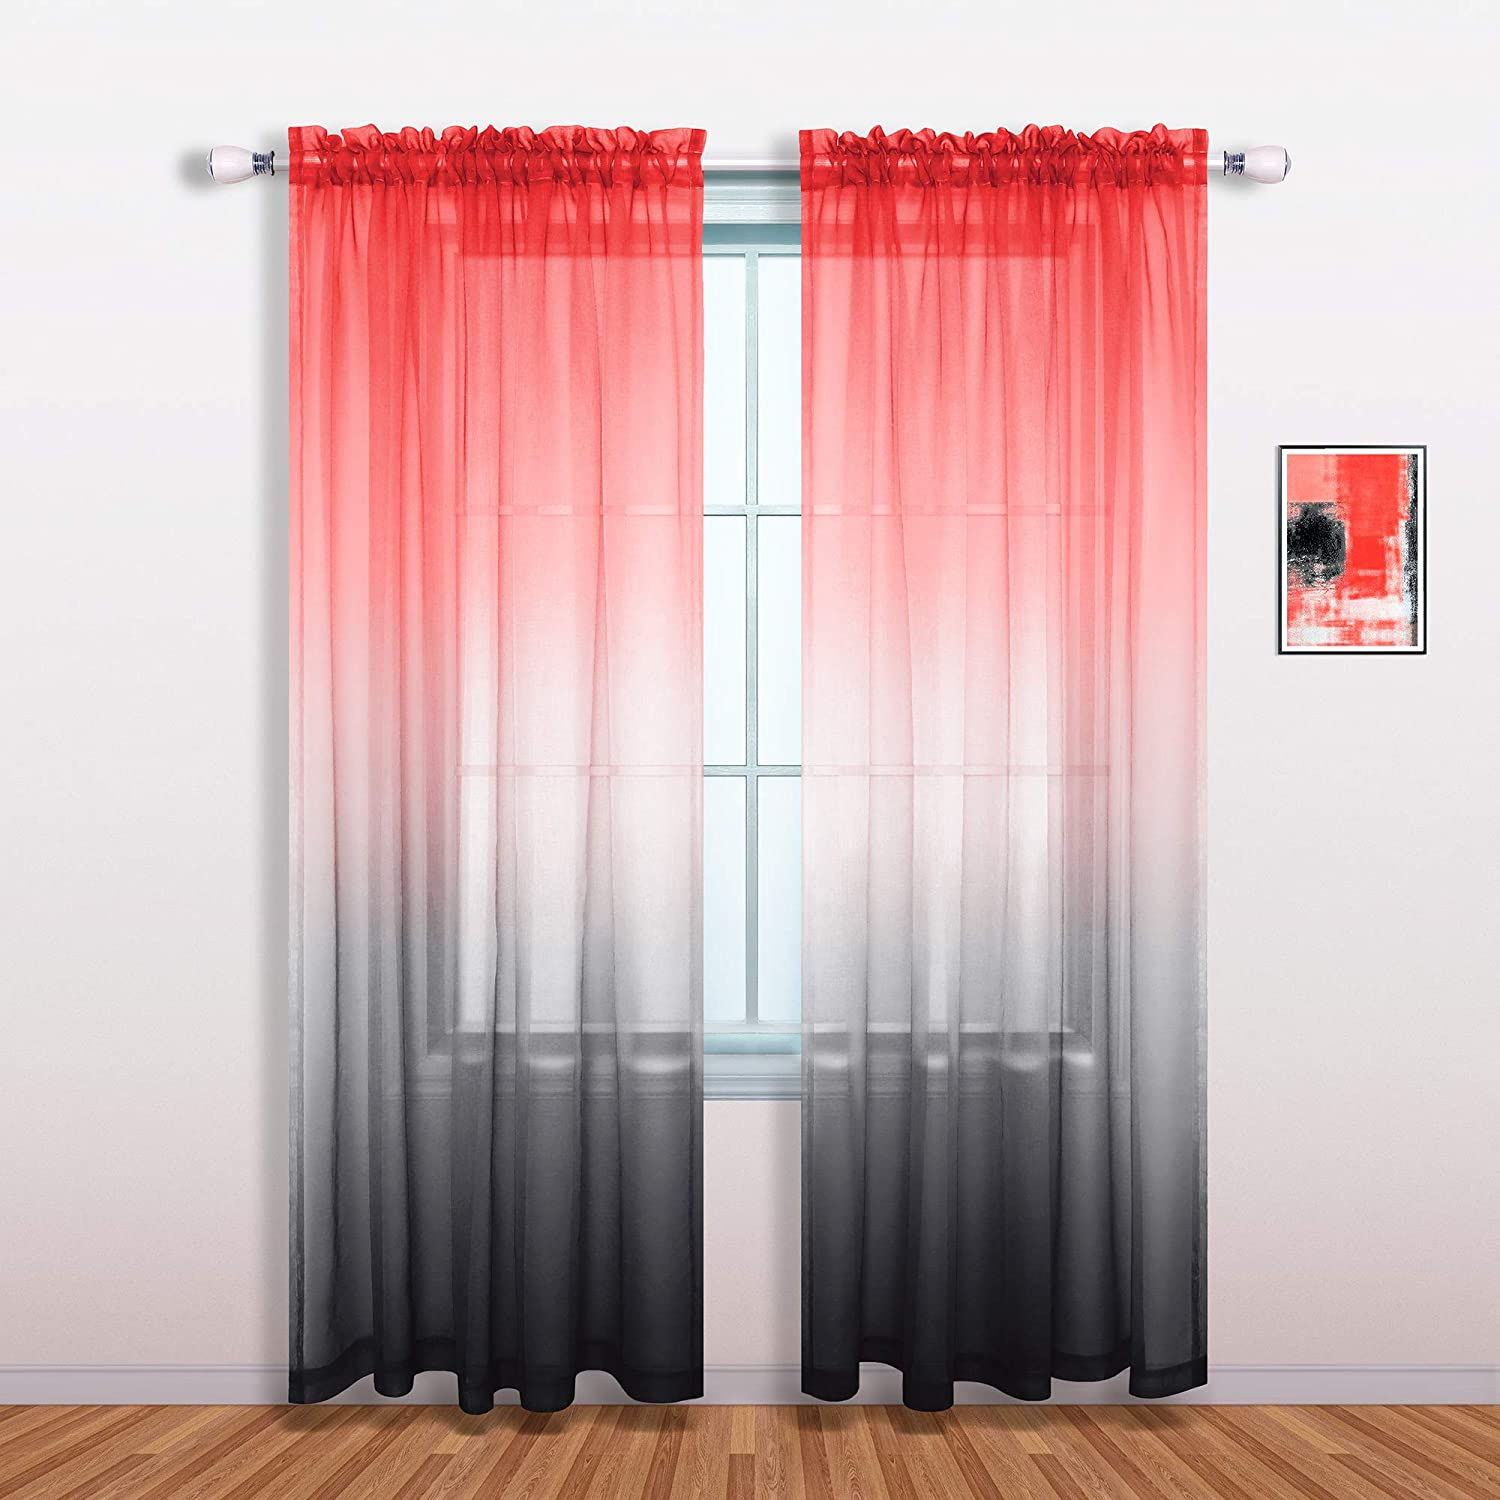 Red and Black Curtains 84 Inches Long for Living Room Decor Set of 1 Single Sheer Panel Modern Ombre Elegant Curtains for Bedroom Girls Decorations 52x84 Long